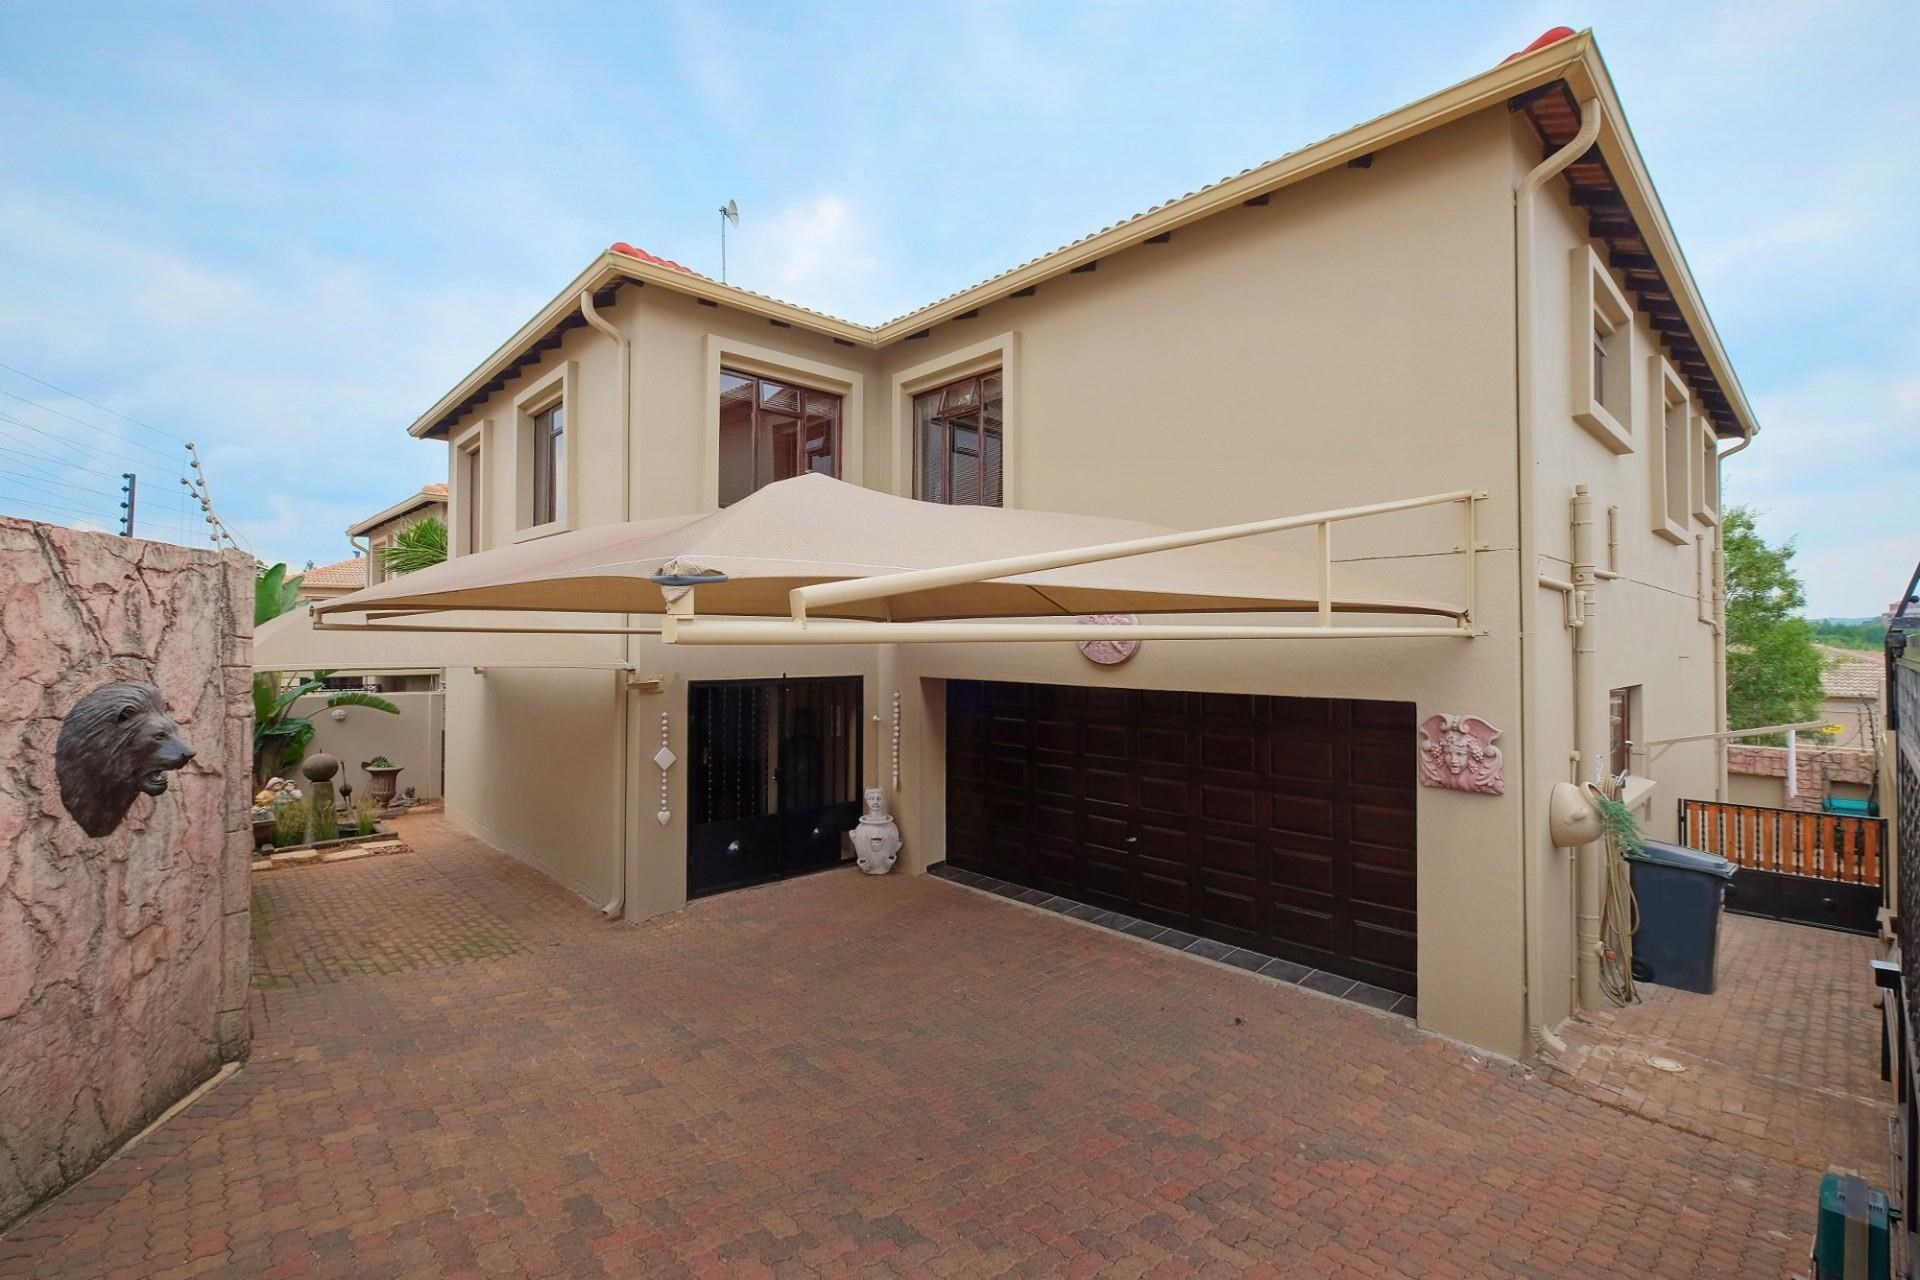 5 Bedroom House for Sale in Chancliff